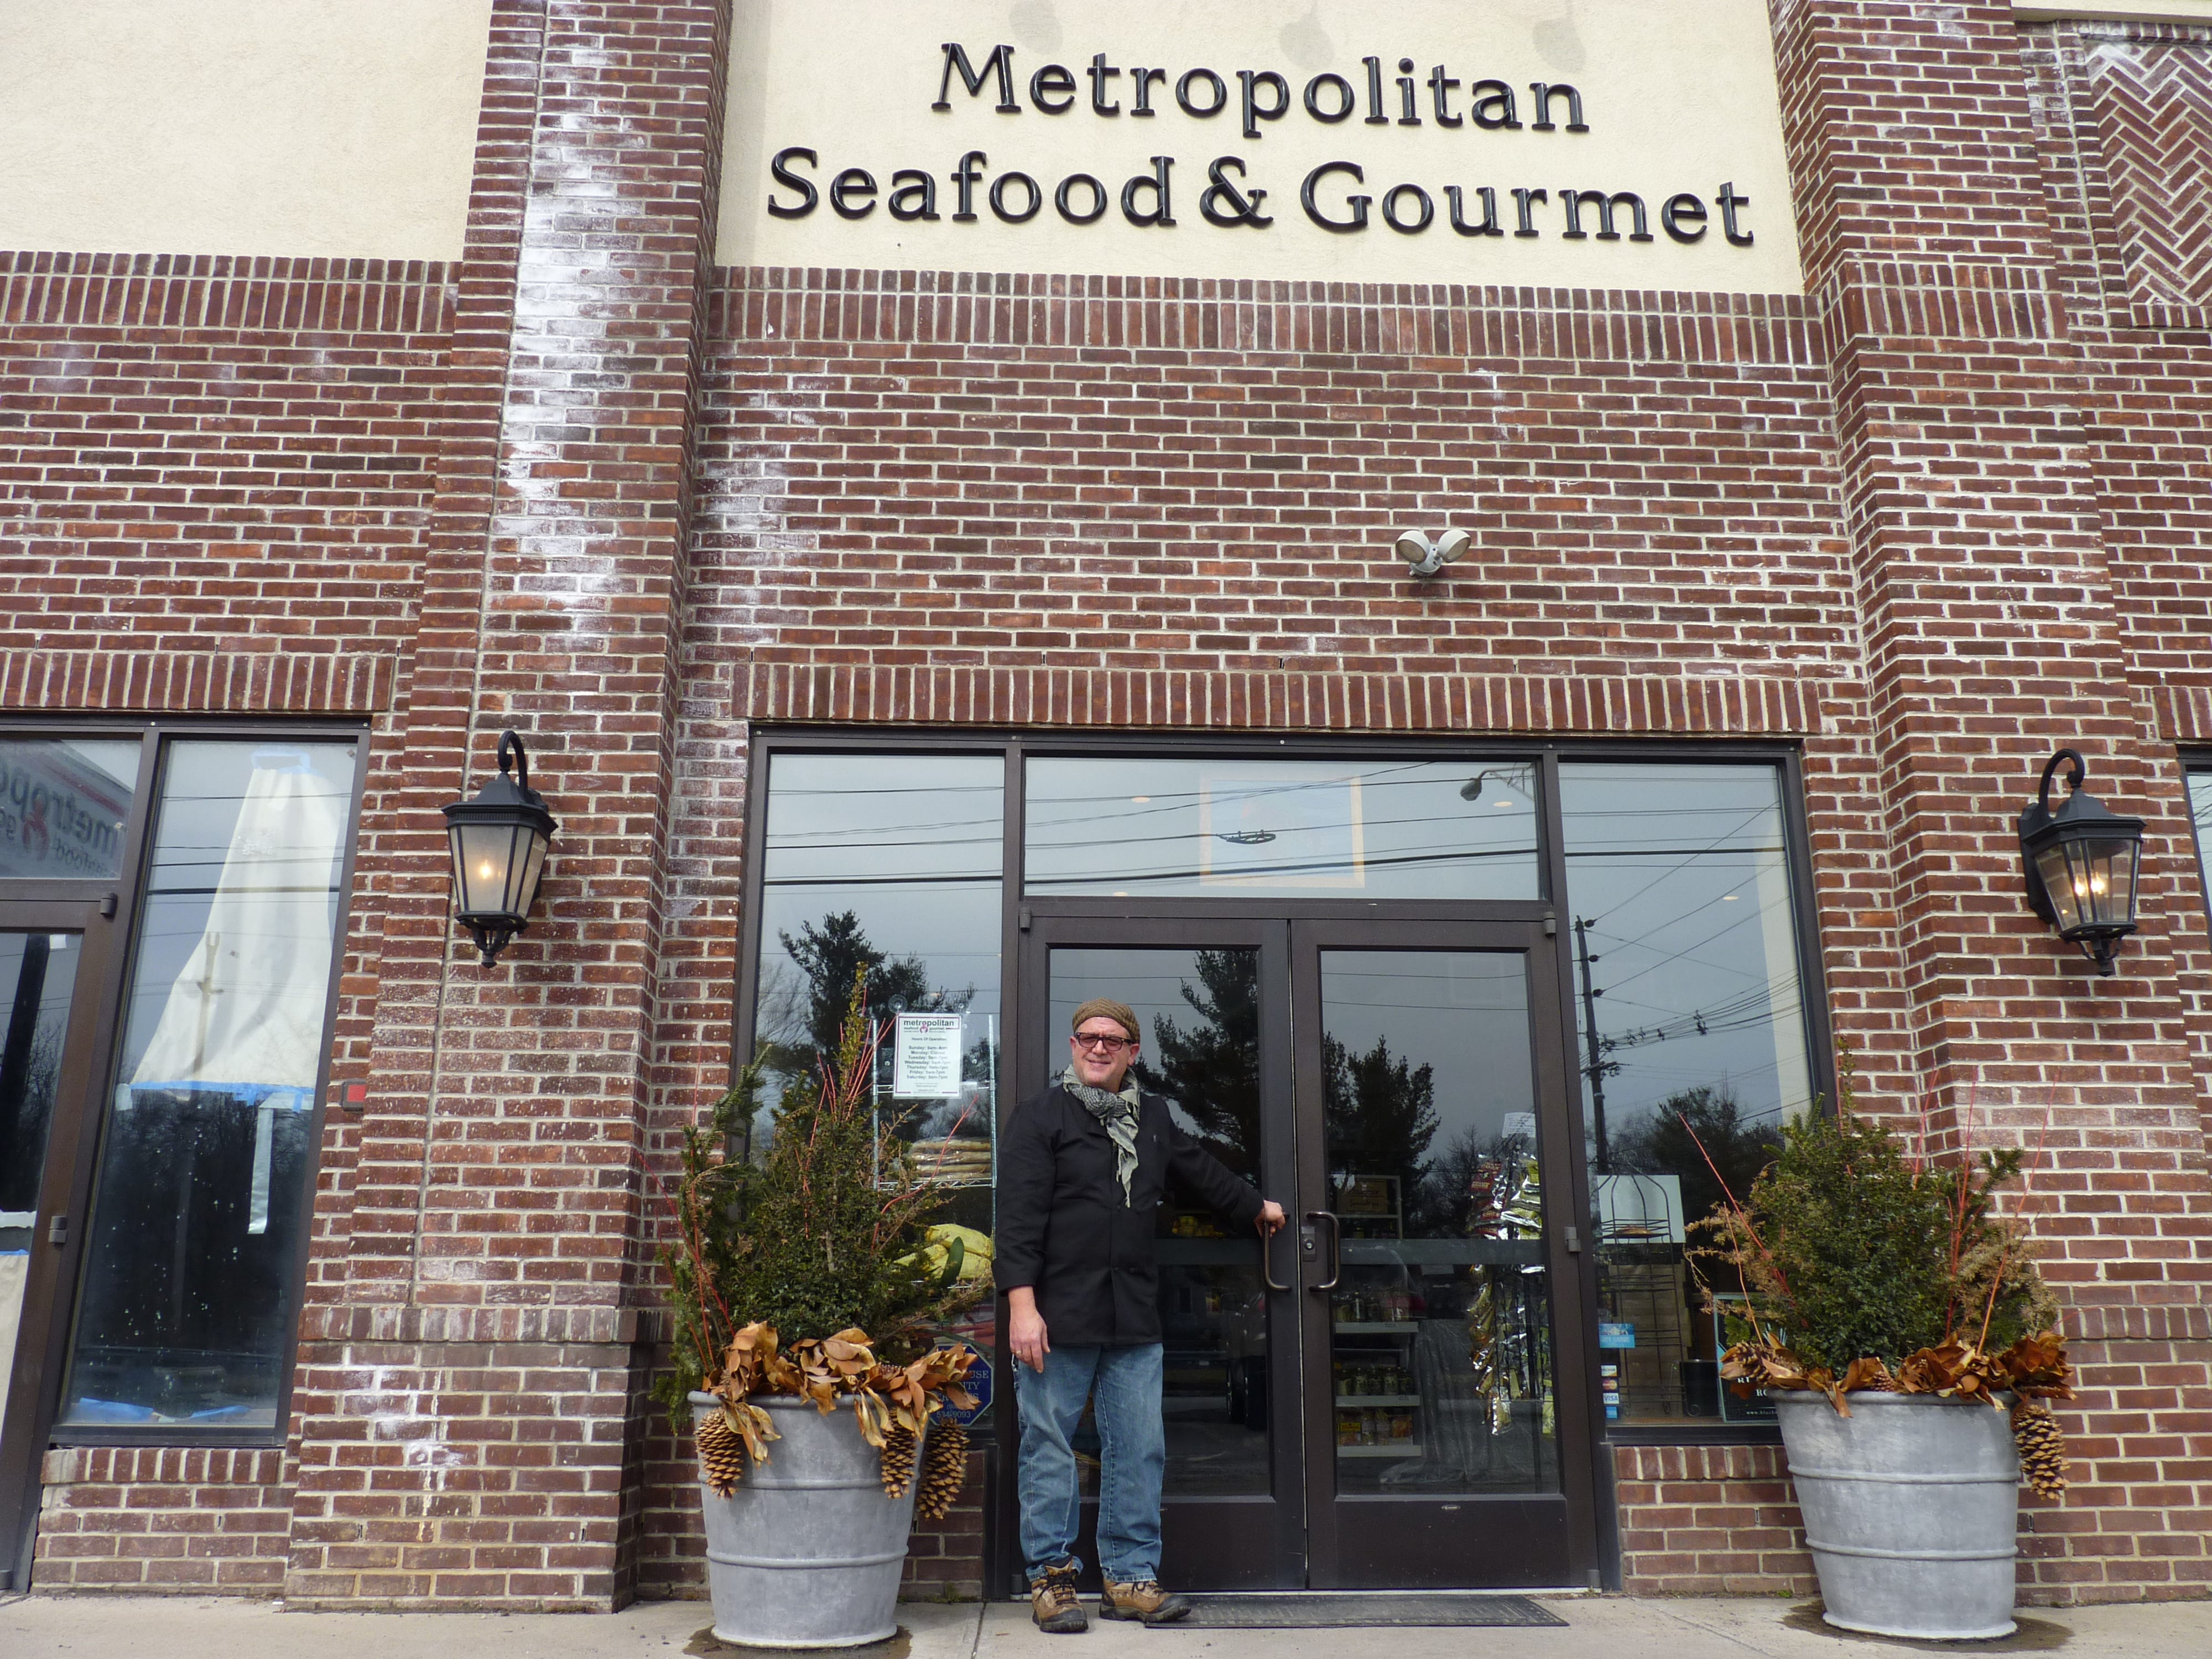 Owner Mark Drabich in front of Metropolitan Seafood & Gourmet in Lebanon.